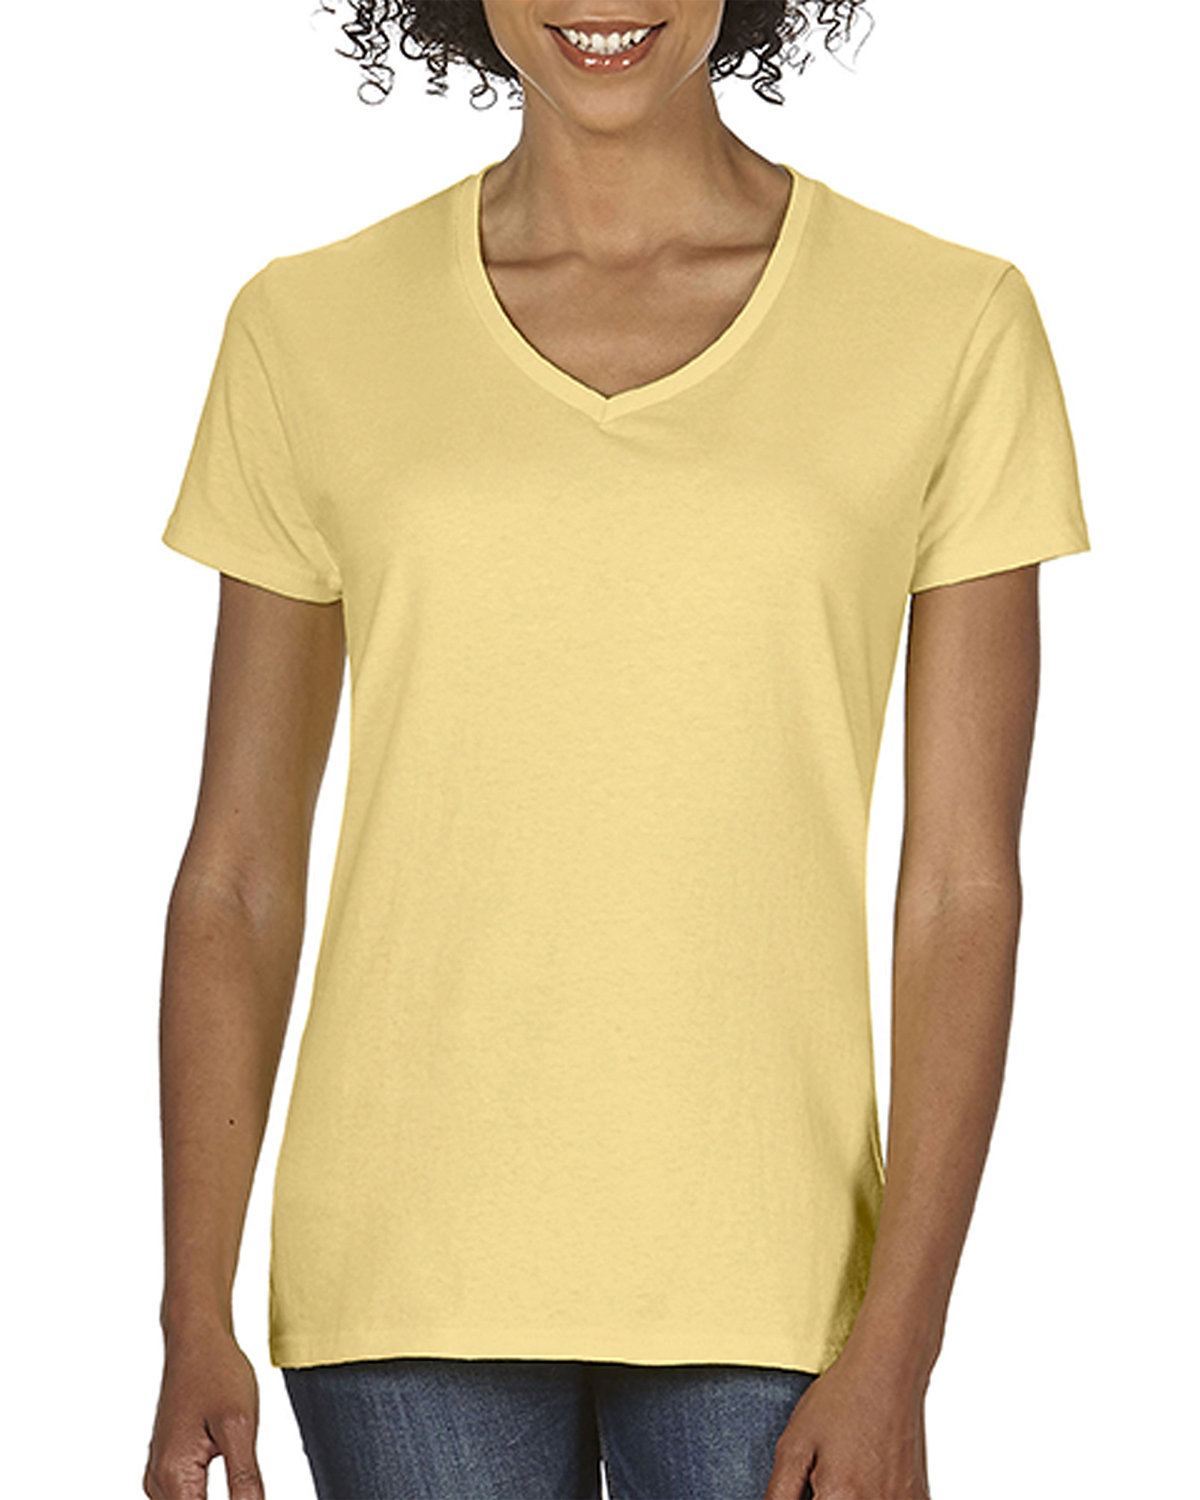 Comfort Colors Ladies' Midweight V-Neck T-Shirt BUTTER